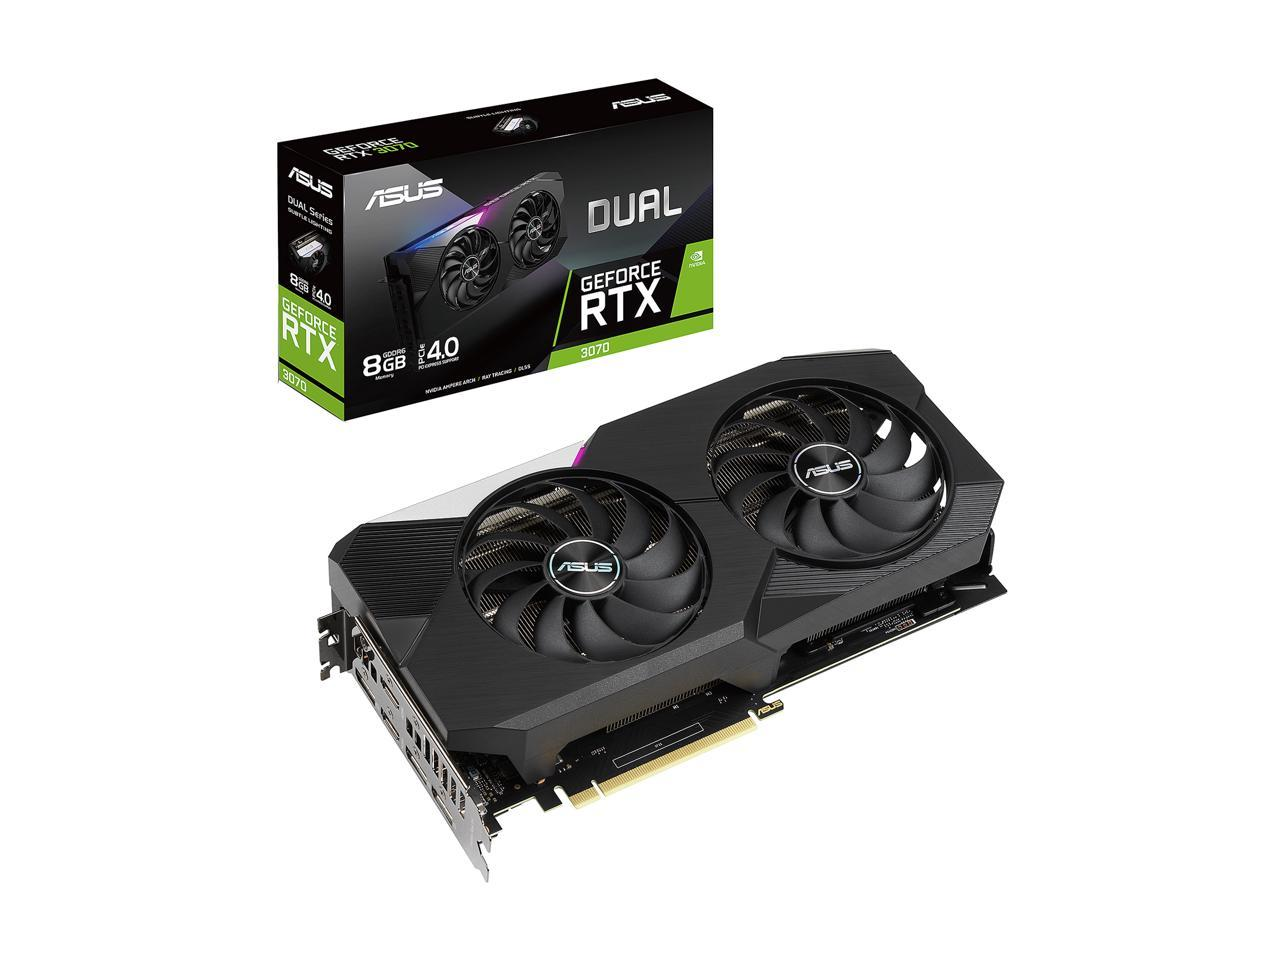 ASUS Dual GeForce RTX 3070 + EVGA 400w Watt PSU Bundle IN STOCK